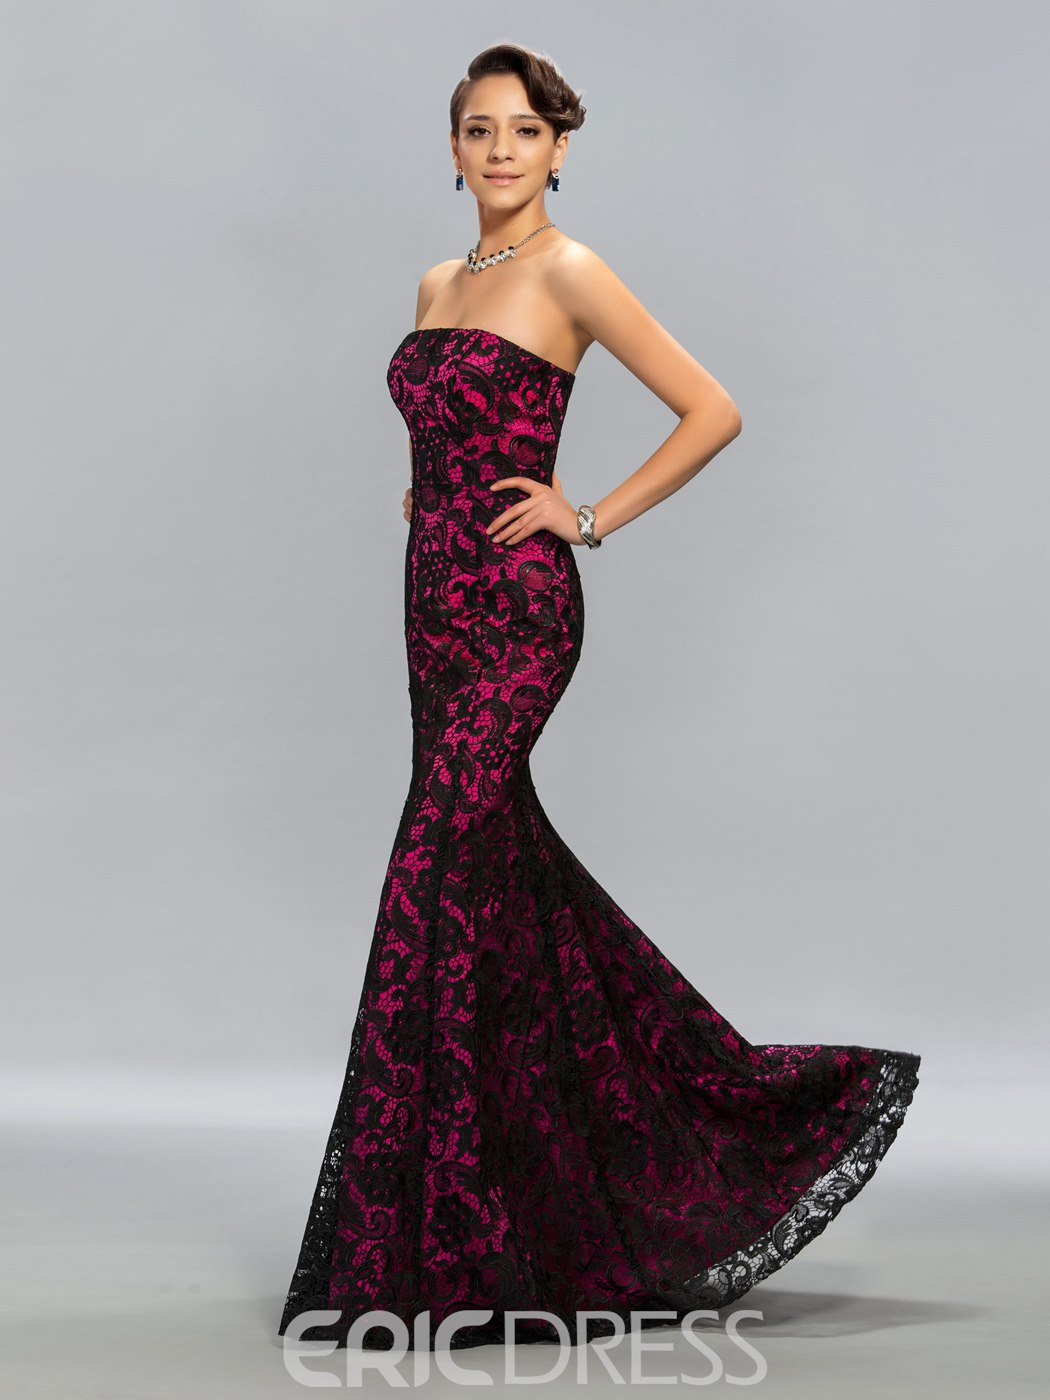 Vintage Strapless Floor-Length Mermaid Evening Dress